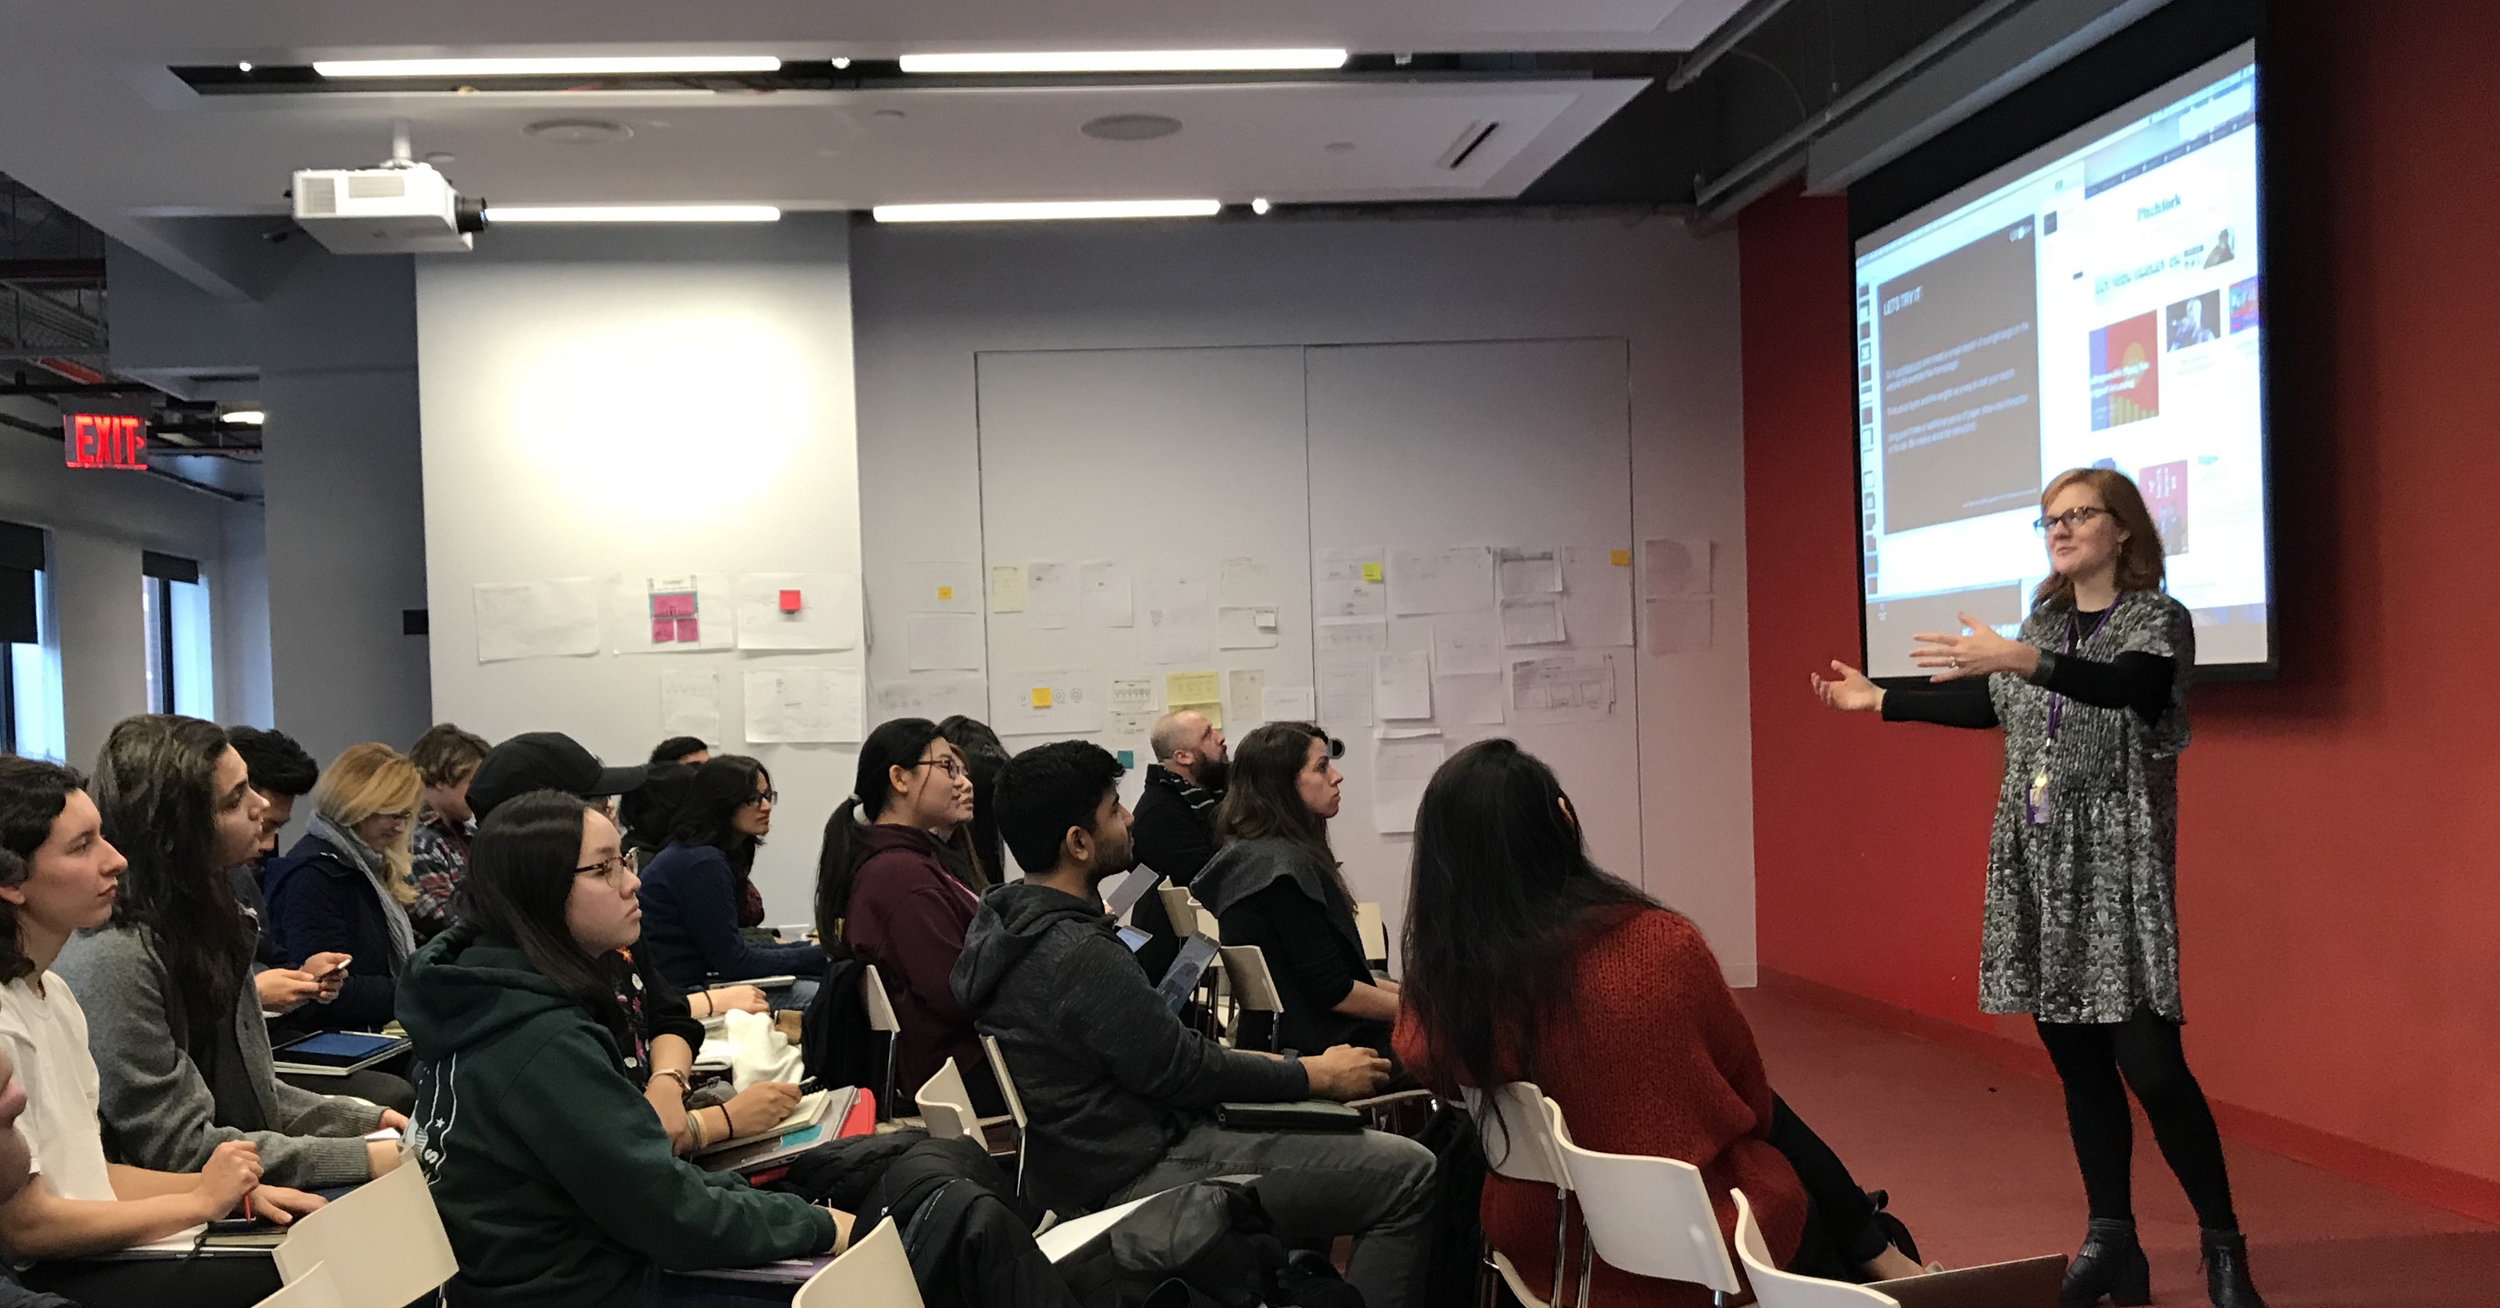 First day of the class: User Experience Design, Spring 2018, Integrated Digital Media, NYU. Professor Dana Karwas.